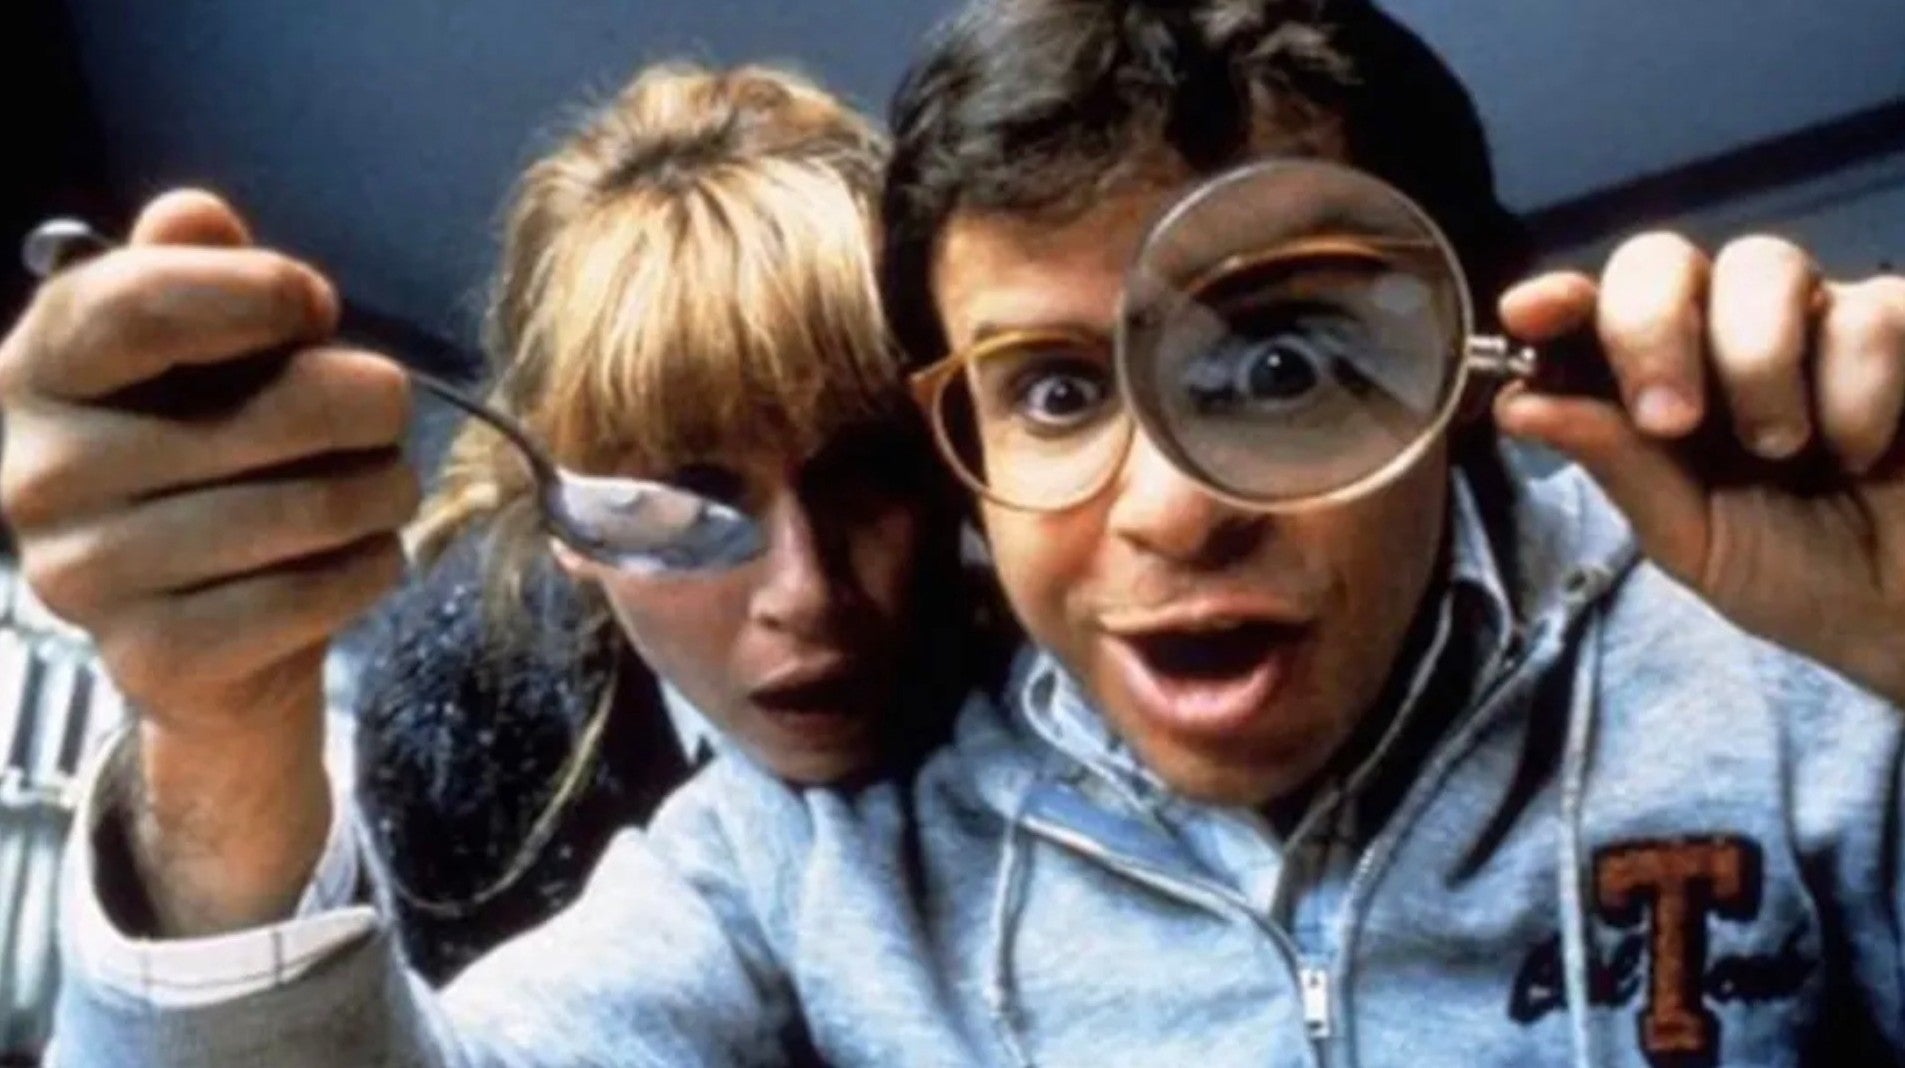 Josh Gad May Star In A Honey, I Shrunk The Kids Reboot/Sequel